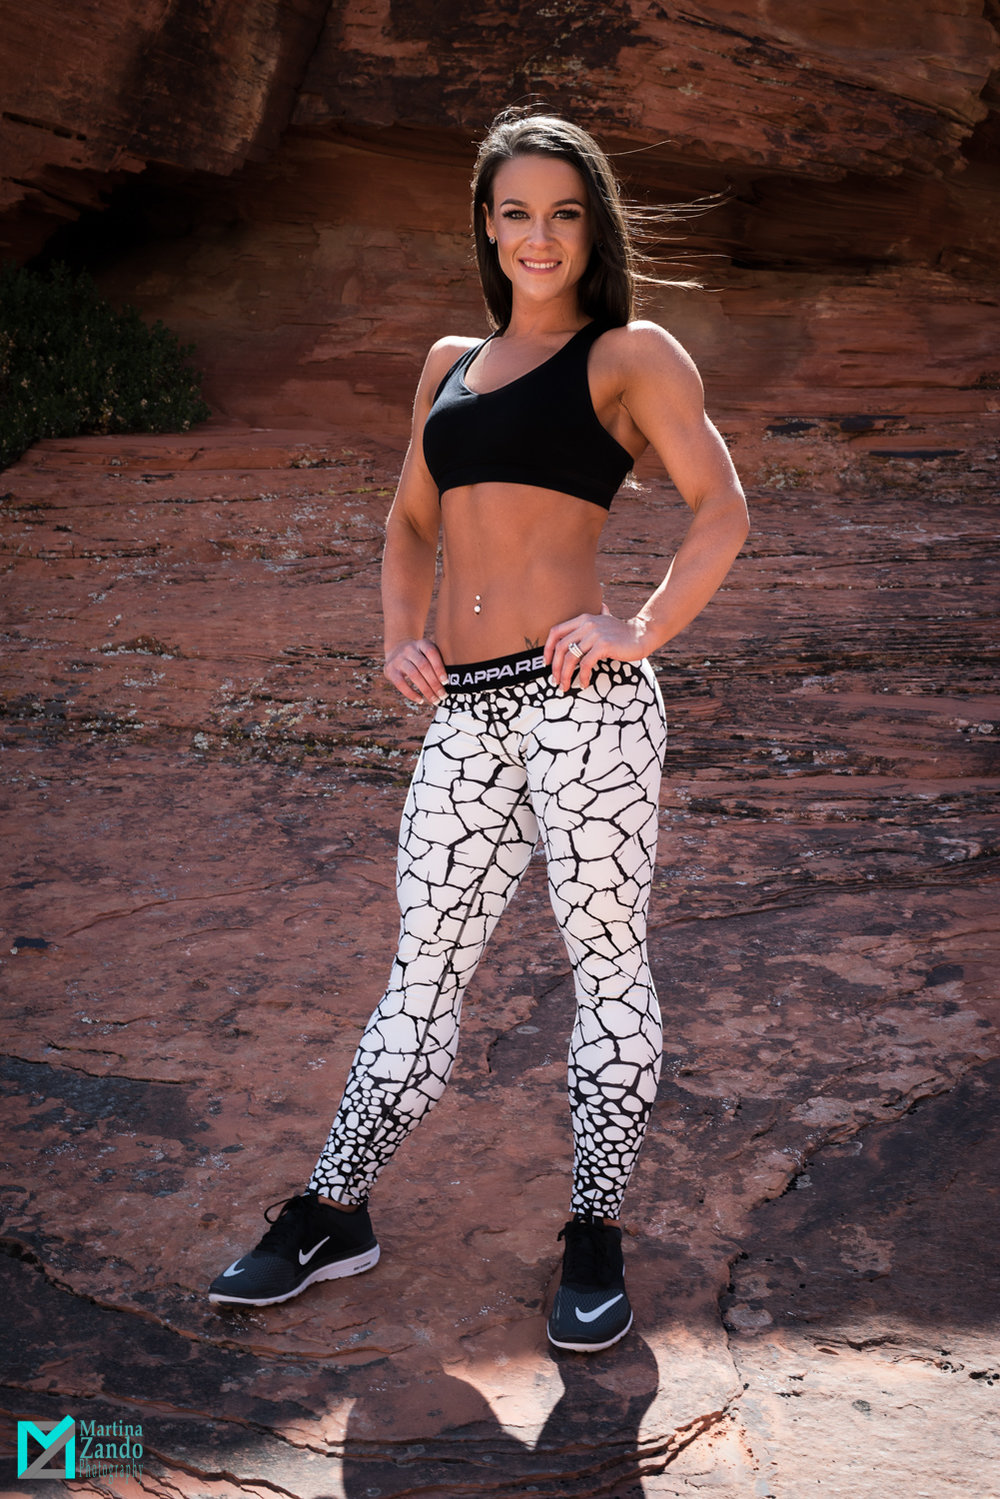 Martina_Zando_Photography__Las_Vegas_Fitness-7.jpg